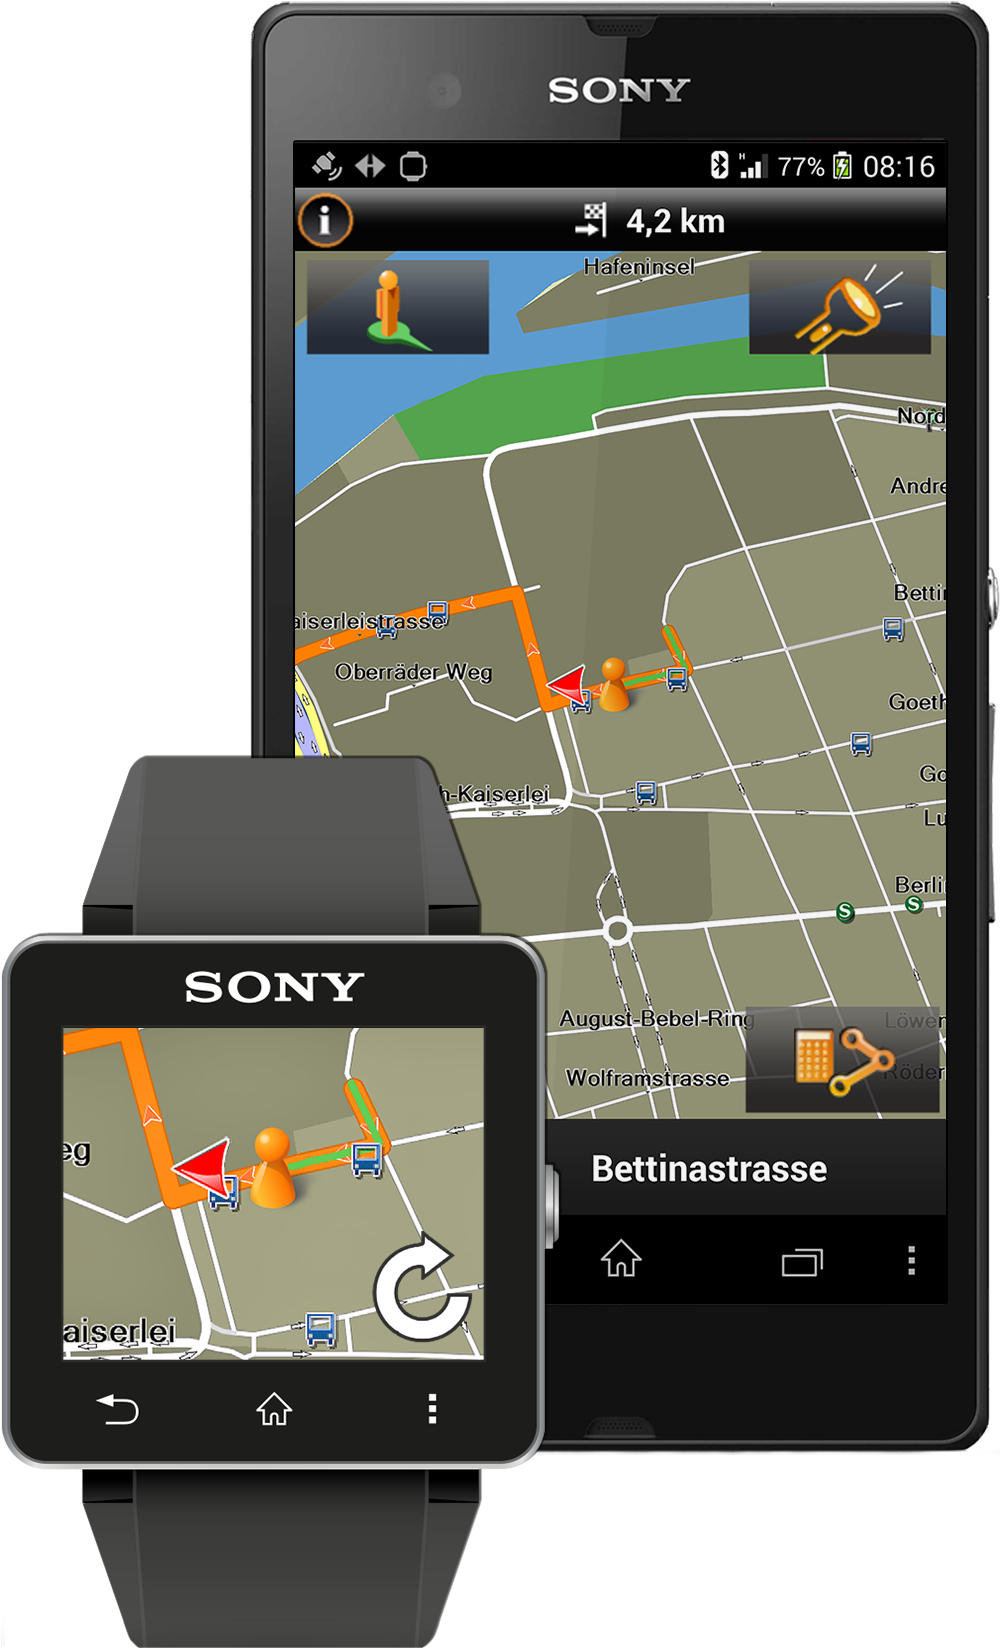 Garmin Xperia Edition seamlessly integrates with Sony SmartWatch 2 to display walking directions. (Photo: Business Wire)